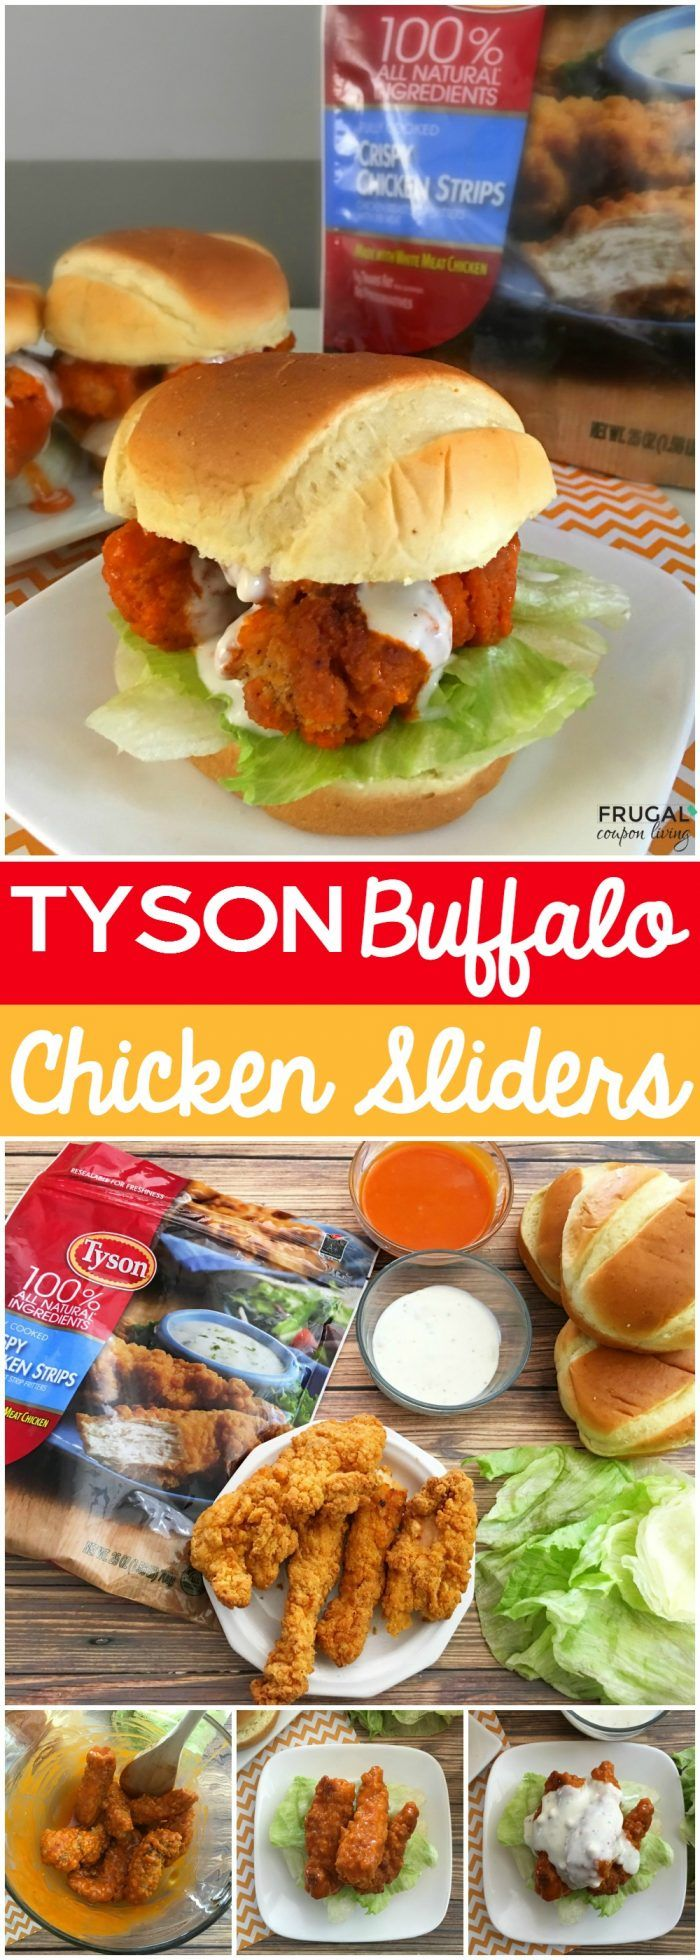 Tyson® Buffalo Chicken Sliders Recipe - this makes a perfect week day recipe for the family. Also the perfect game day recipe on Frugal Coupon Living. #ad #tysonsfoods #dinner